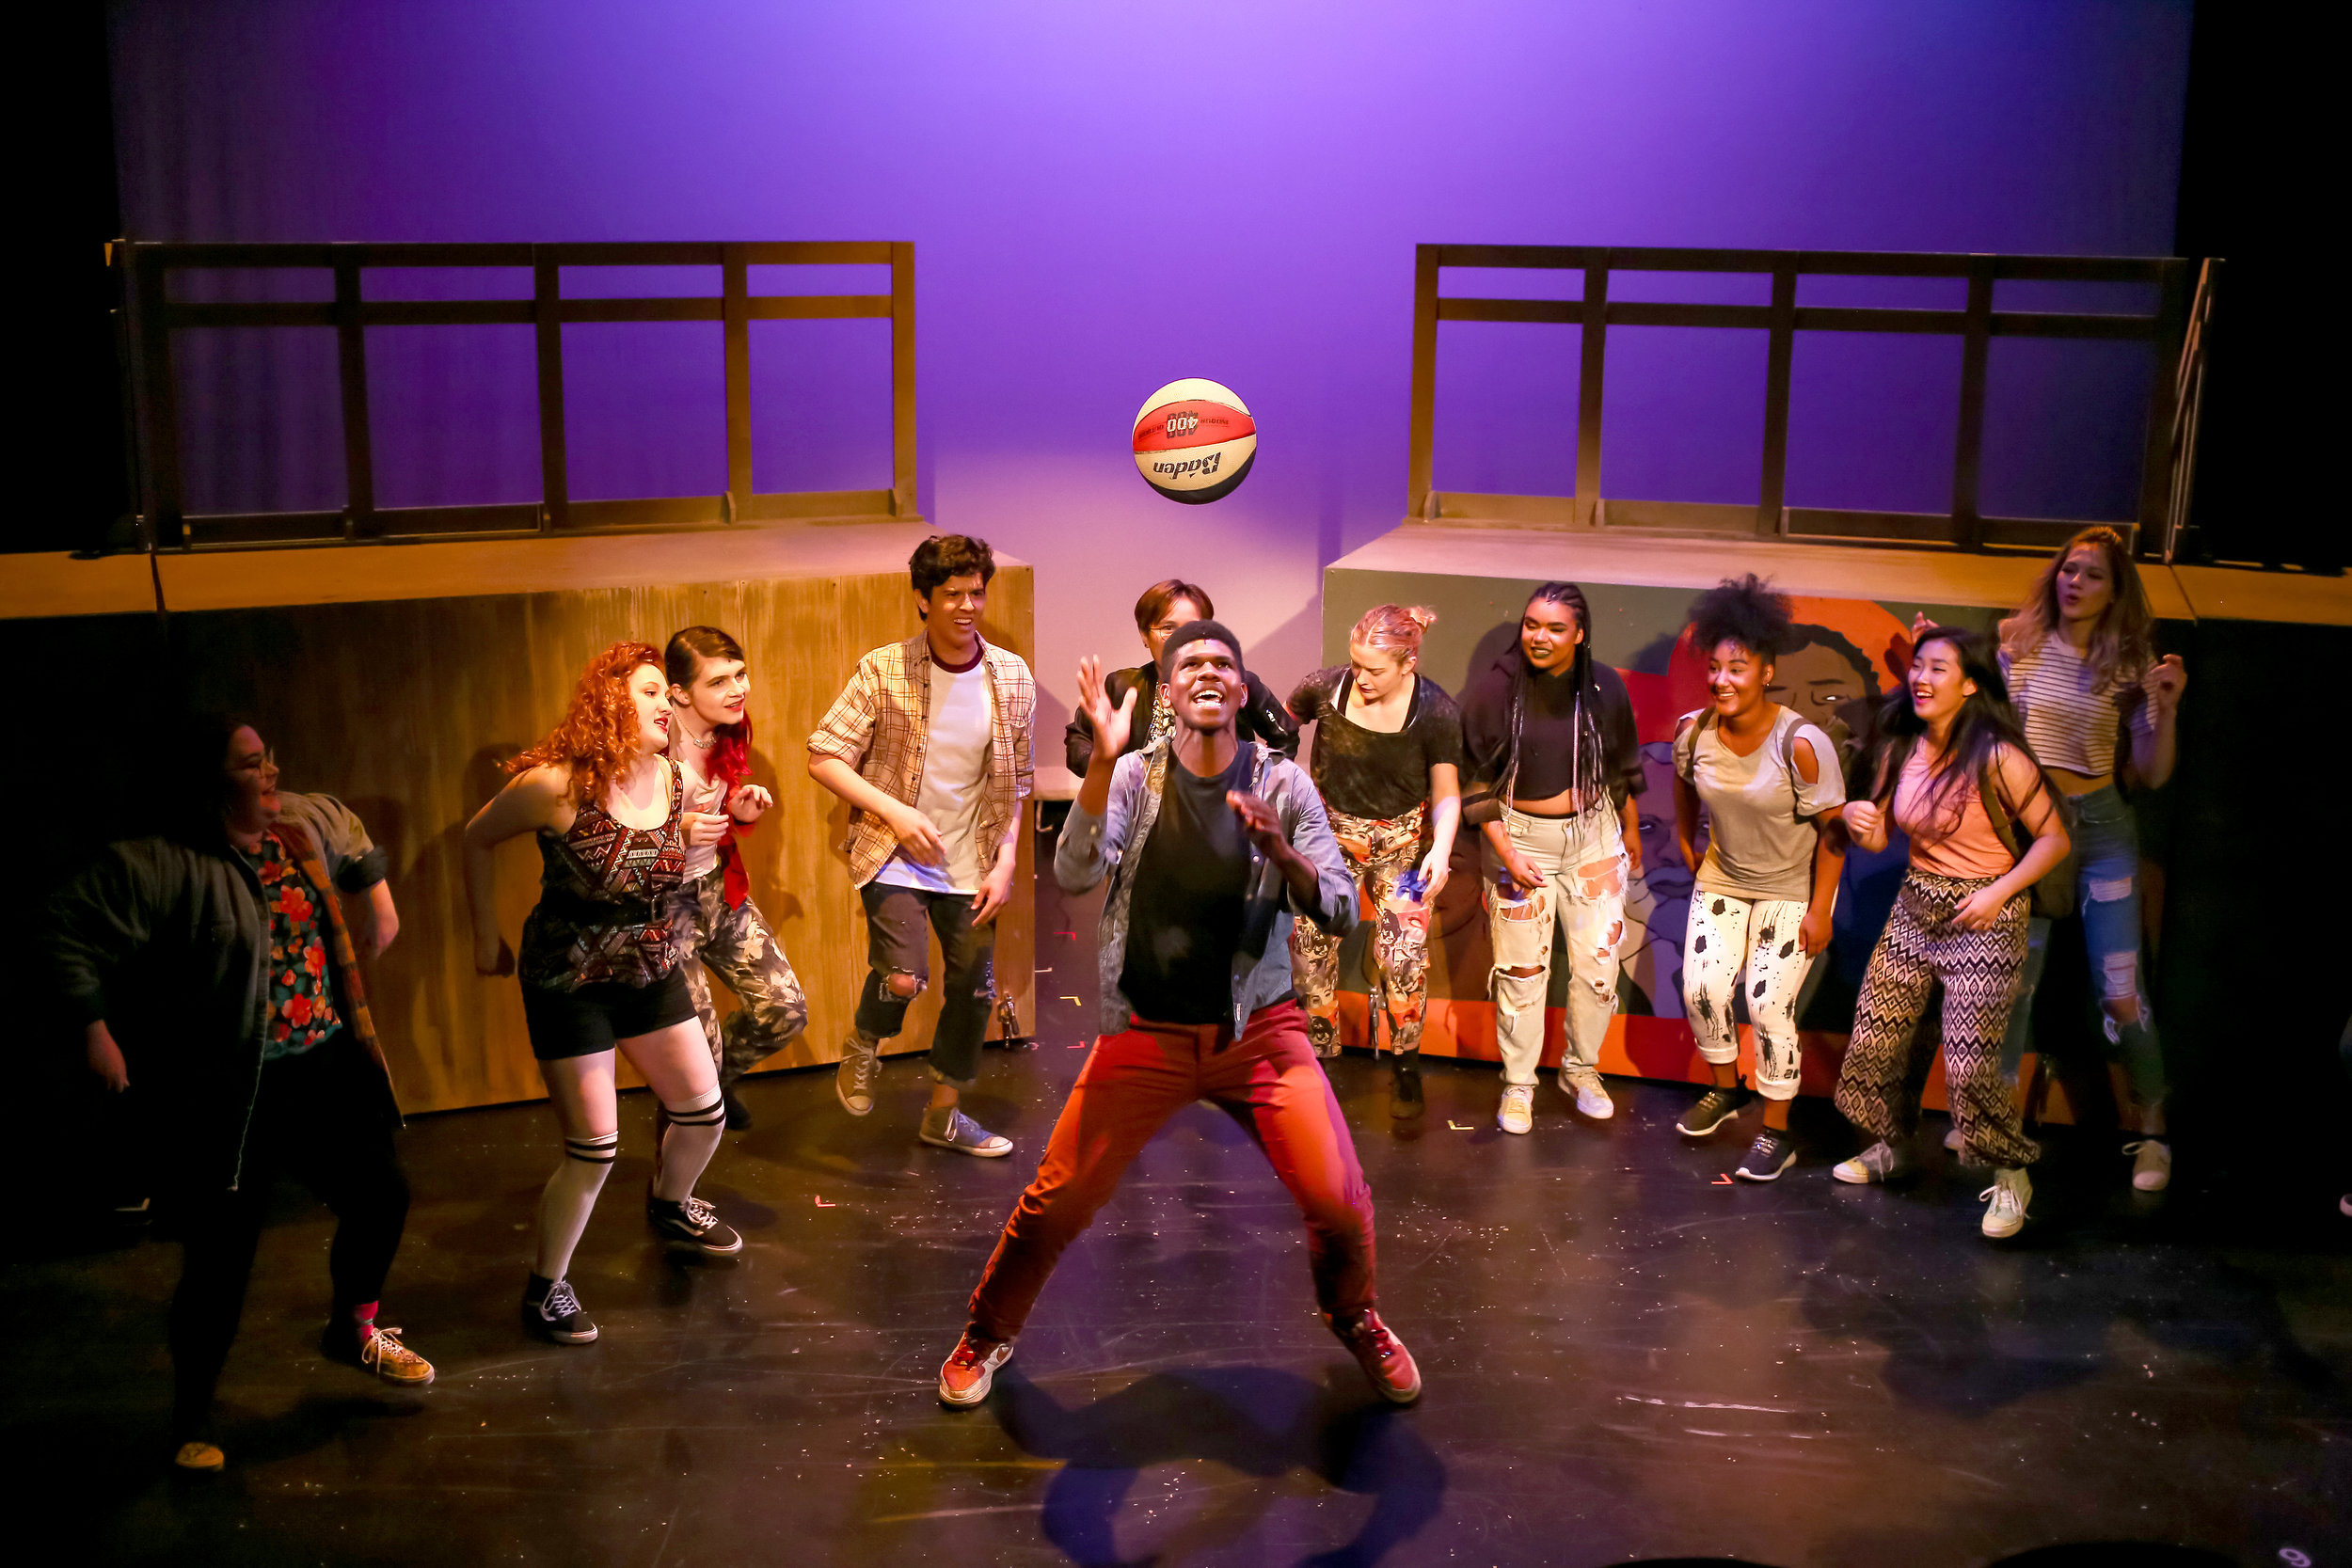 Everett KIDSTAGE - Bring it On, 2018